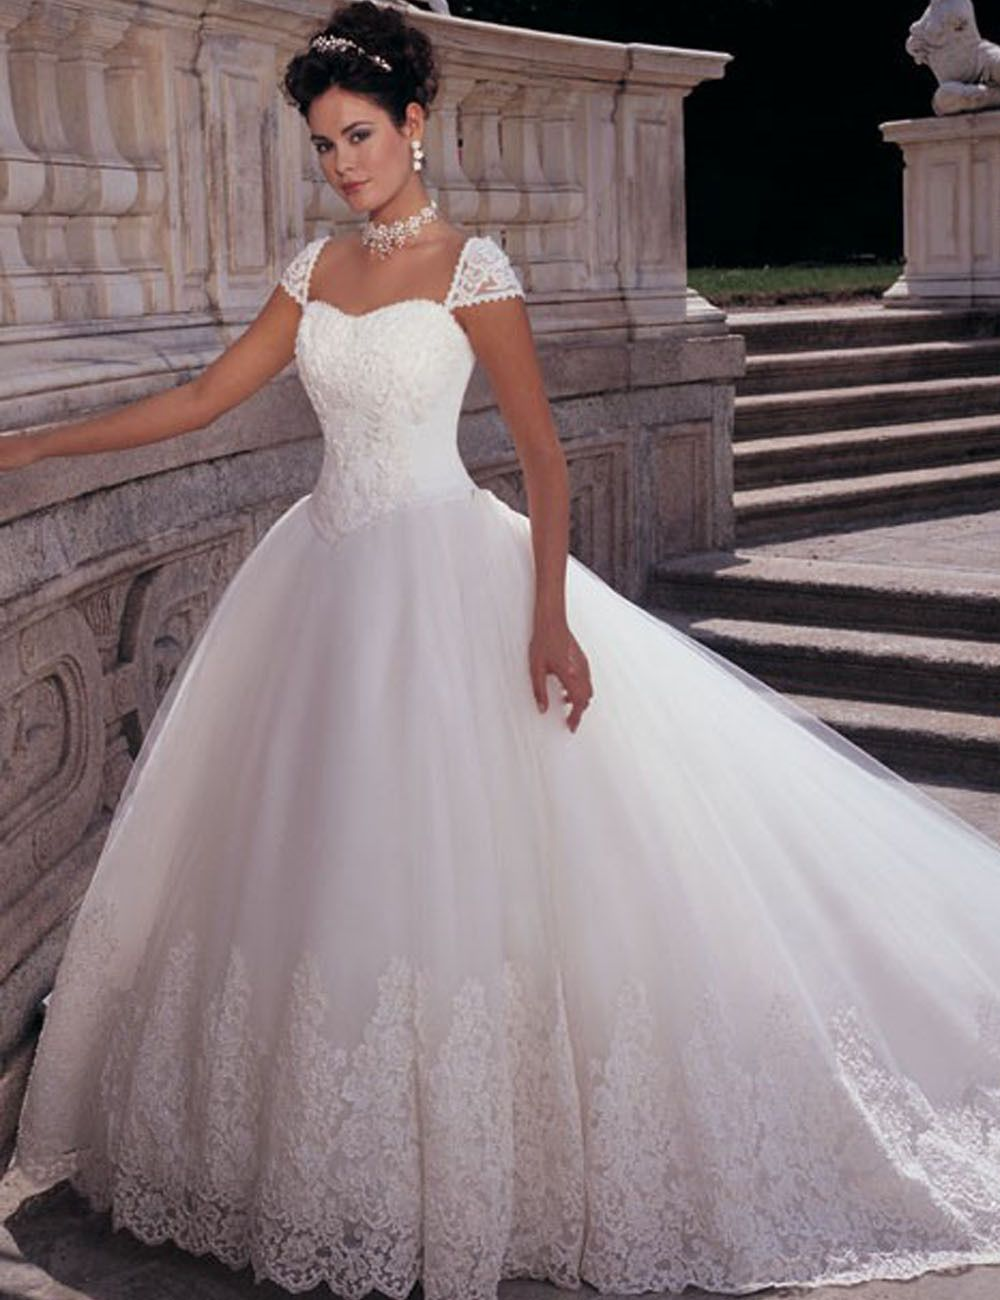 Fairytale wedding dresses google search disney wedding for How to find a wedding dress